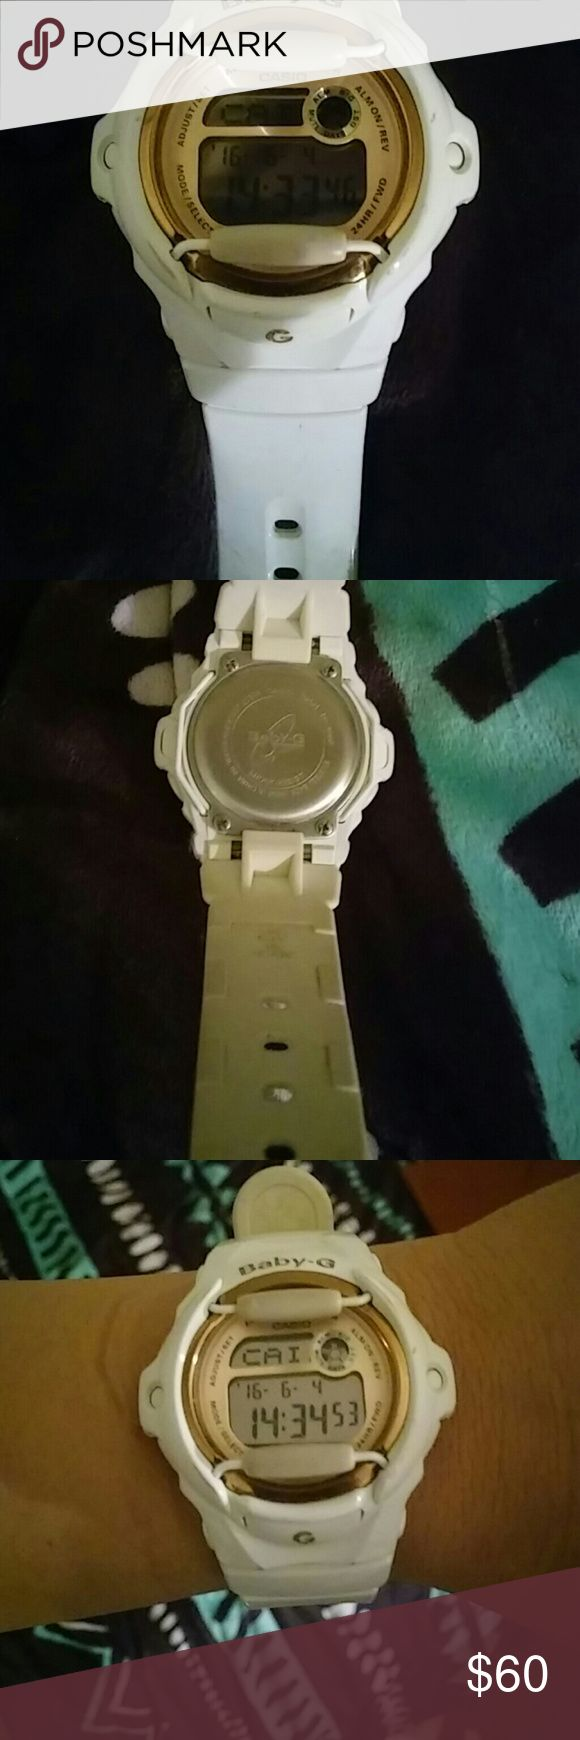 Baby g shock watch Works perfectly fine baby g shock. Rare rose gold and copper colors around face of watch and with white band. Casio baby g shock  Accessories Watches